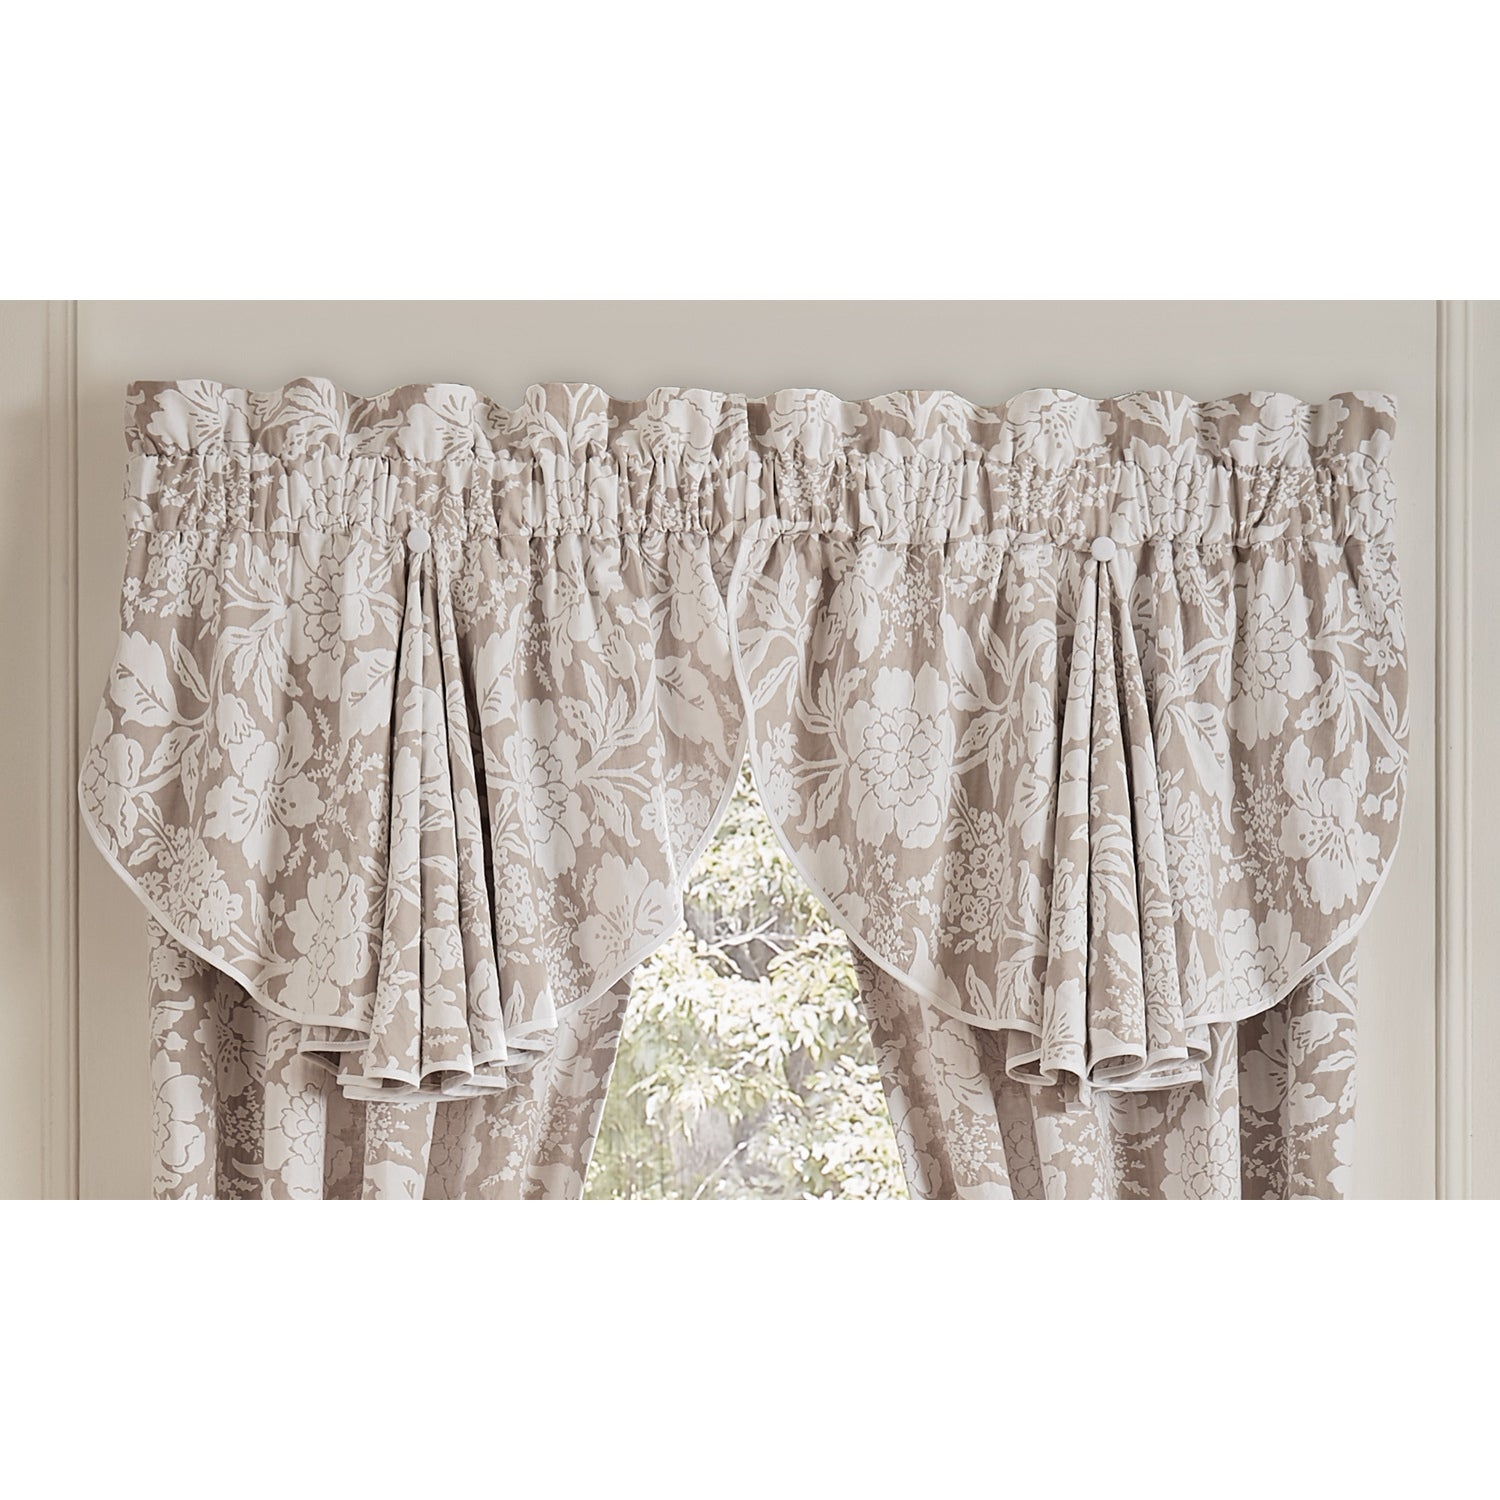 Nellie 42X24 Circle Curtain Valance – 42 X 24 Within Circle Curtain Valances (View 11 of 20)